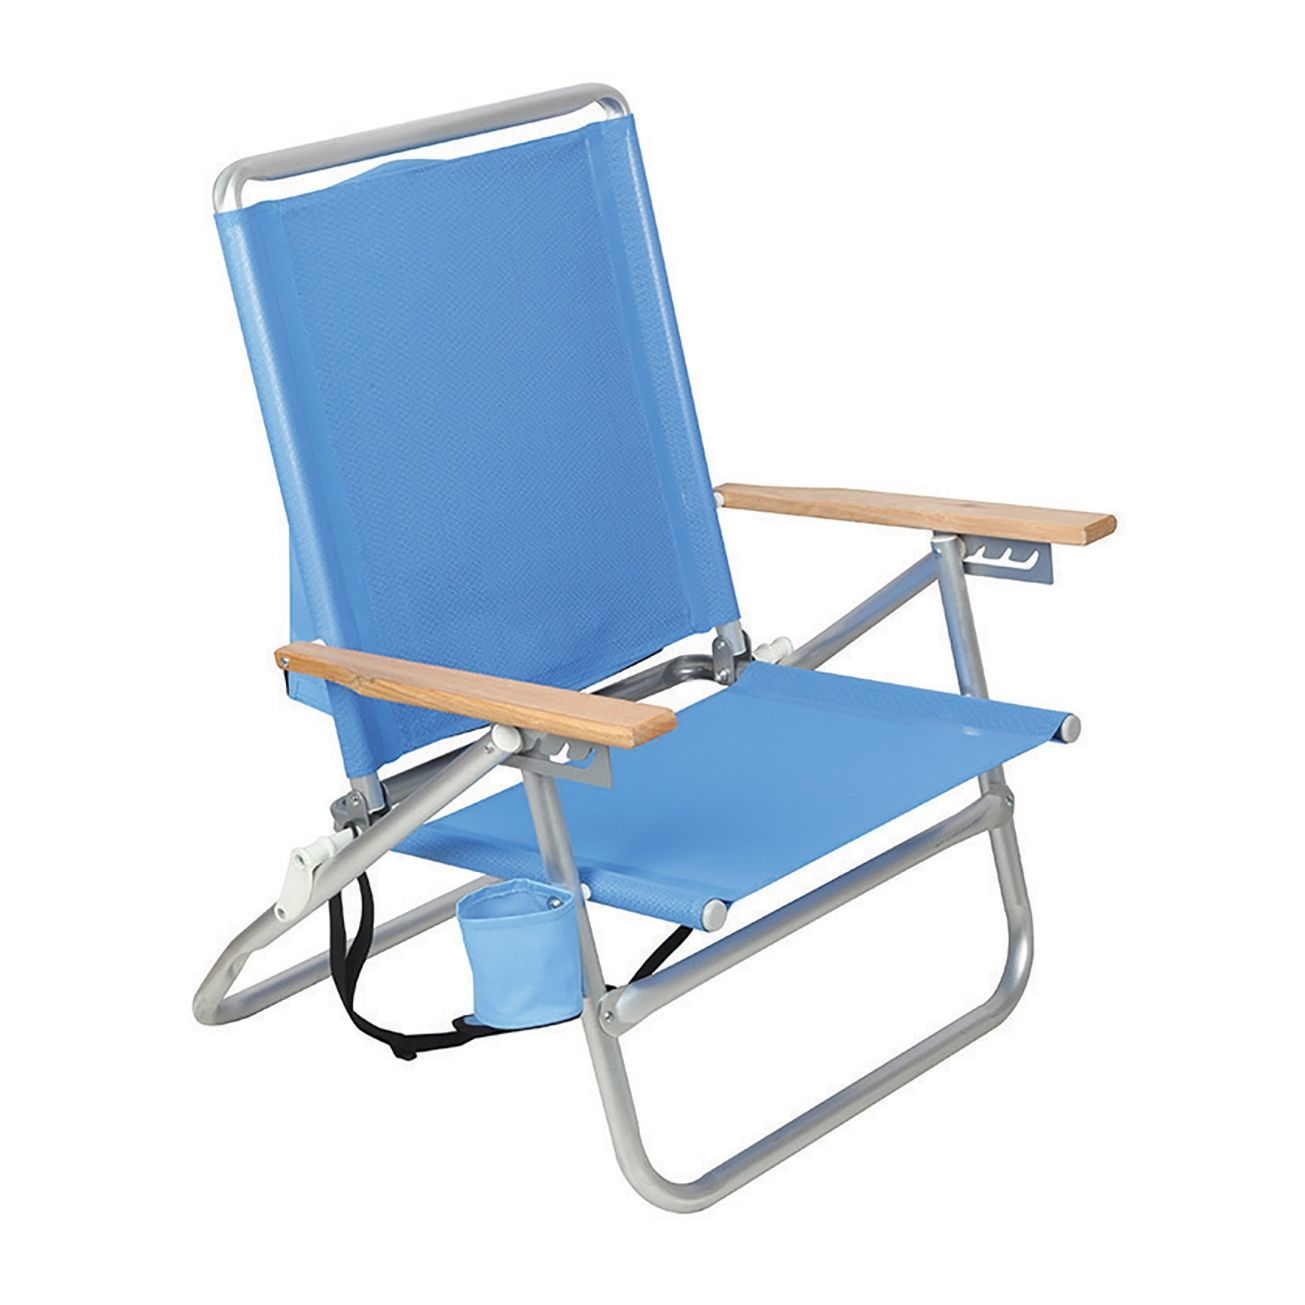 Camping Chairs Sale Backpack Beach Chairs For Sale Cheap Beach And Camping